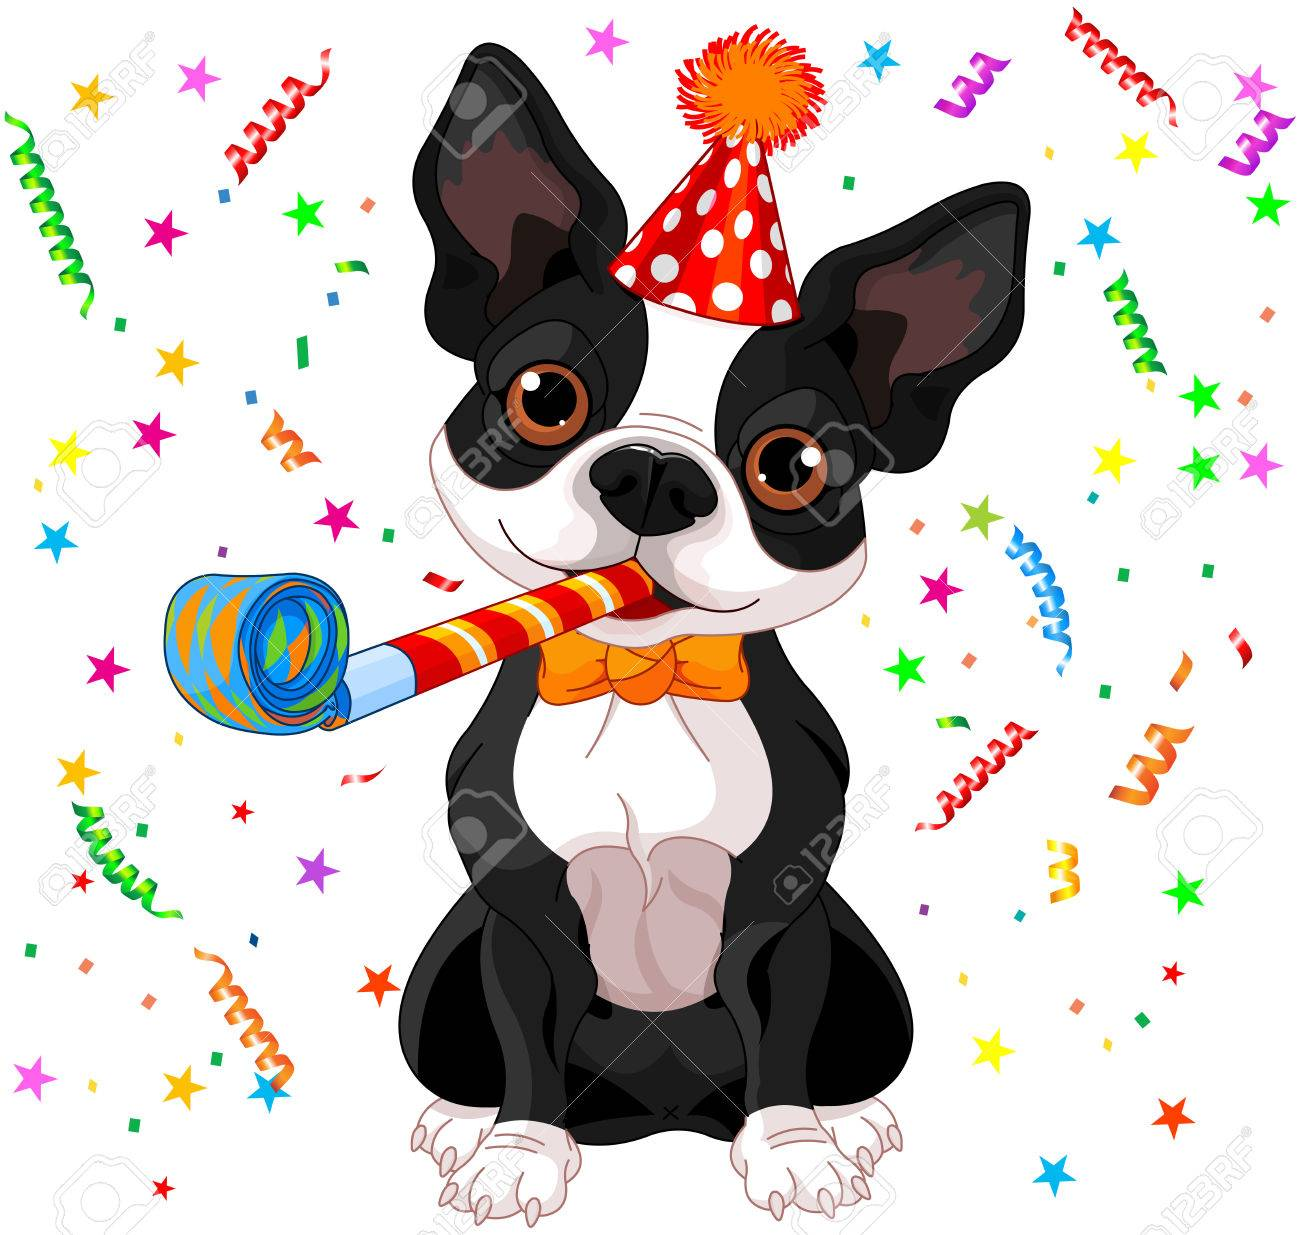 Récompenser un chien sans caresses, friandises ou jeux: conseils? - Page 2 35588778-illustration-of-cute-boston-terrier-celebrating